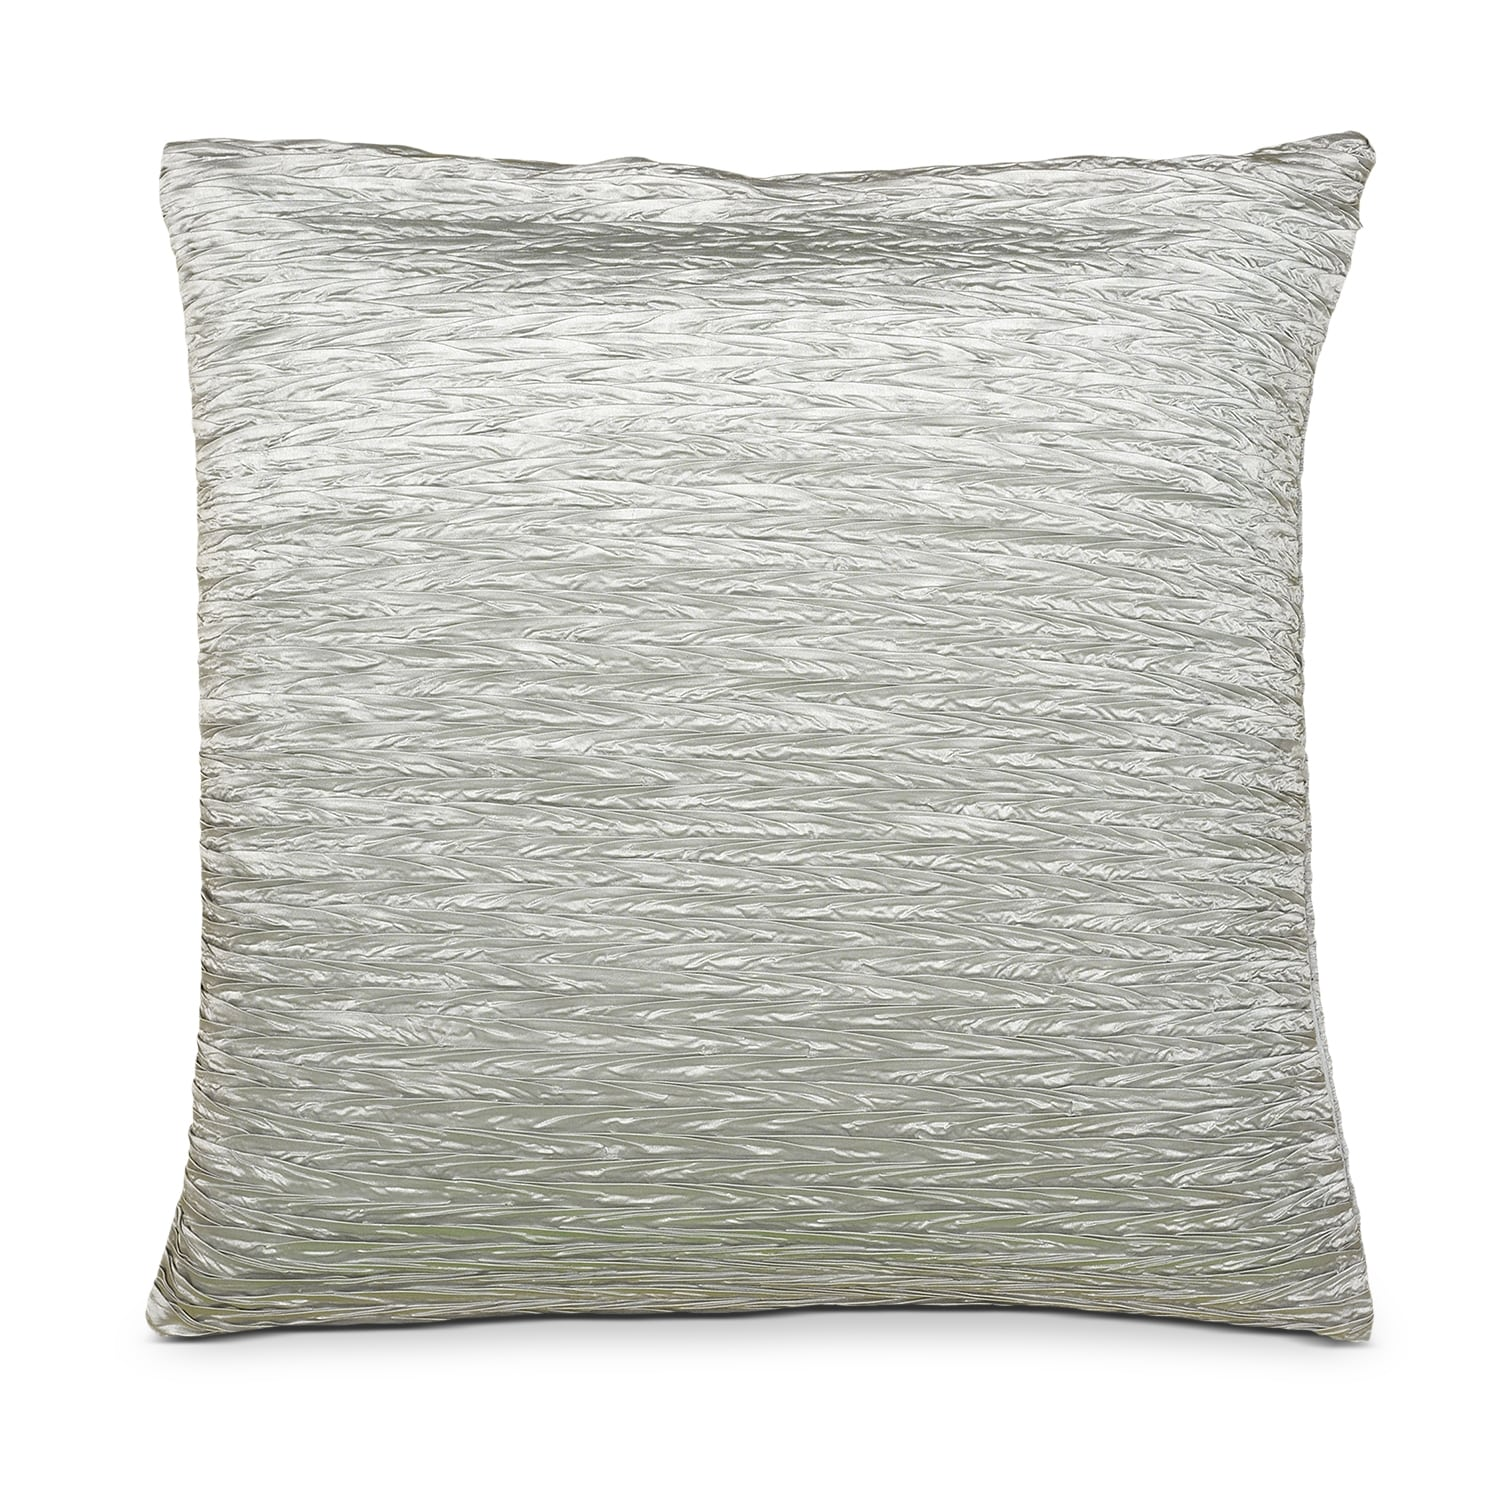 Izzy Decorative Pillow